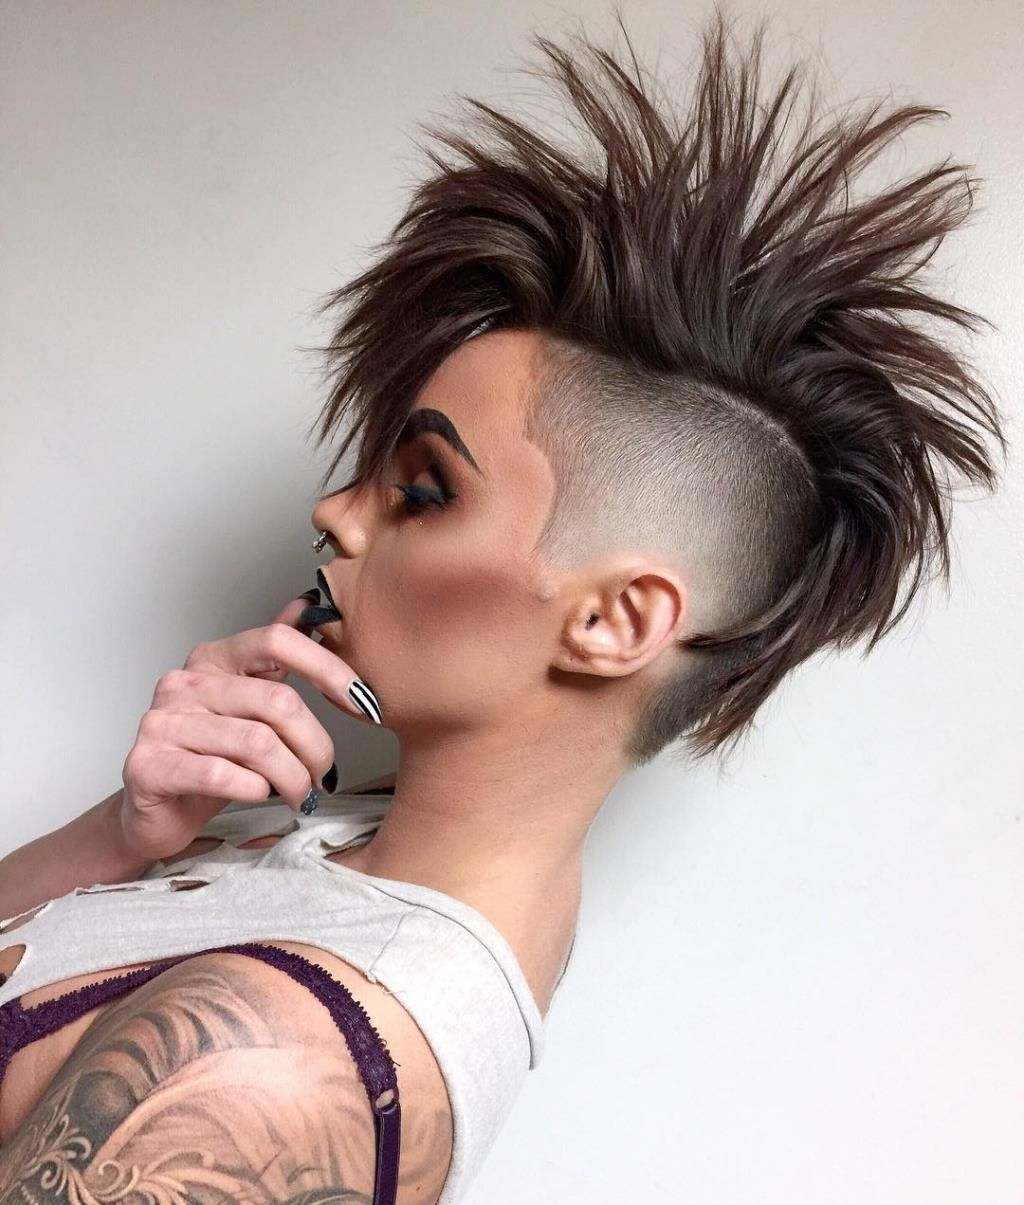 Sexy mohawk girls haircut headshave and bald fetish blog